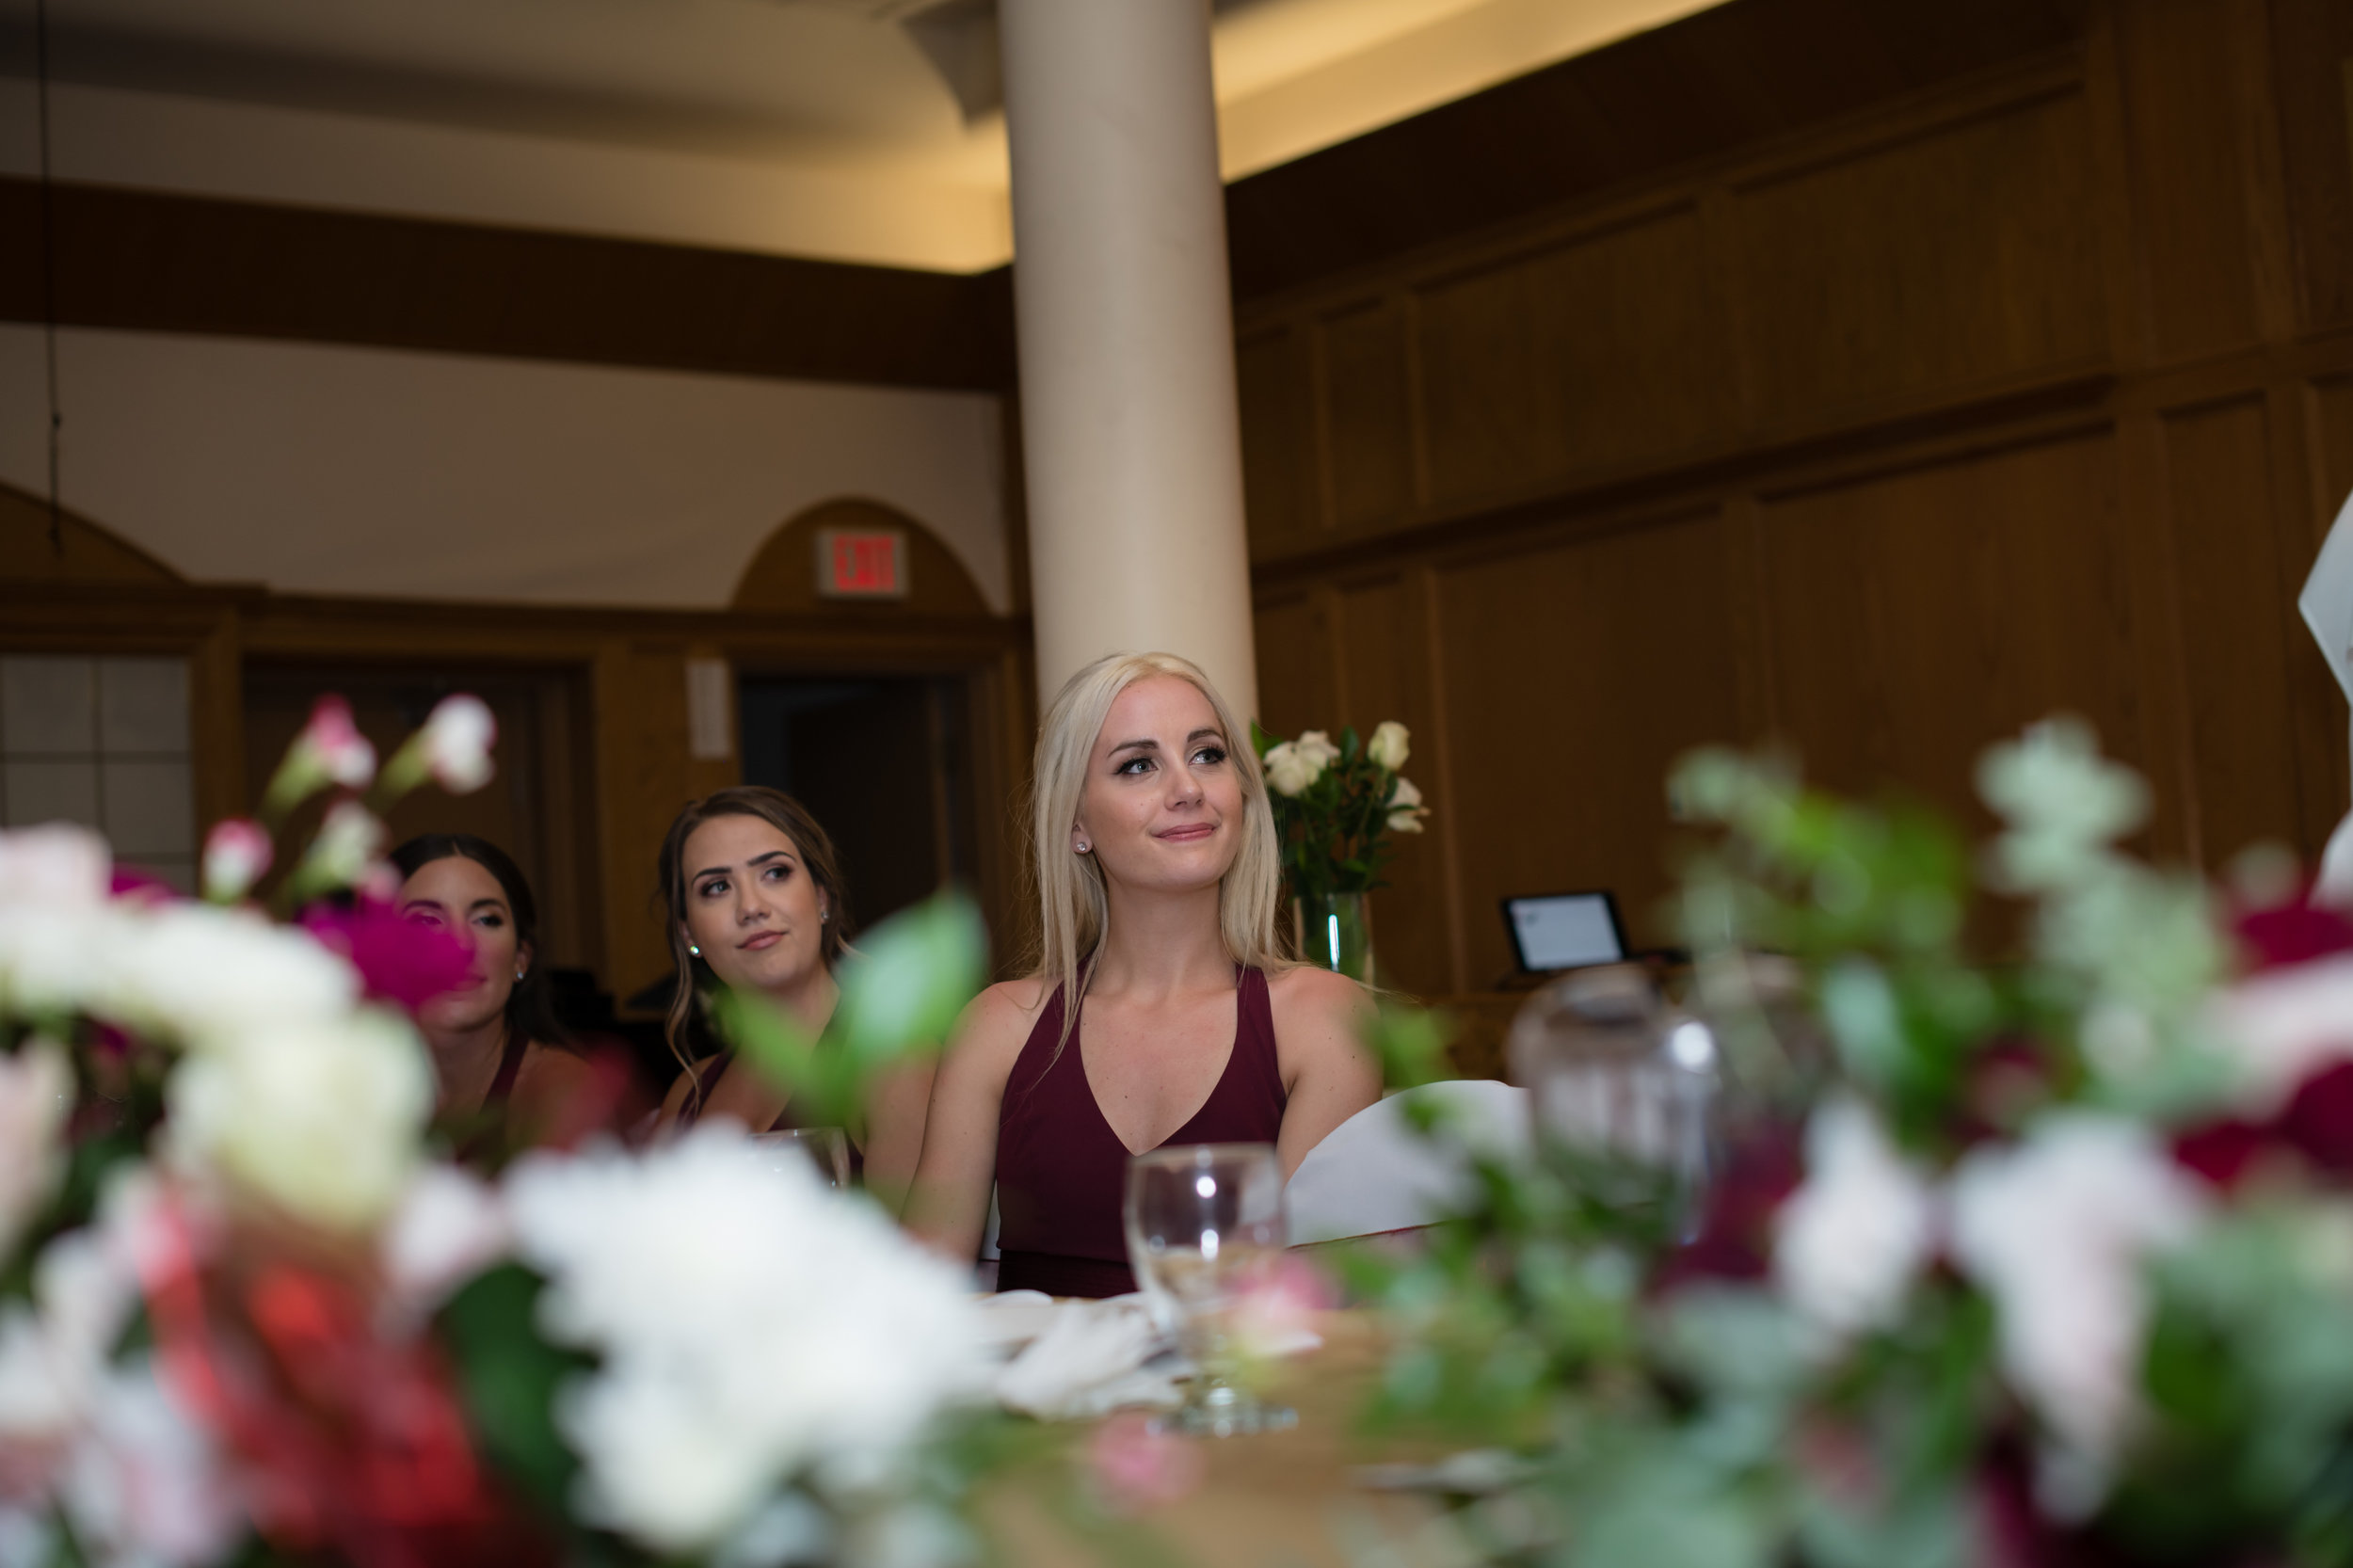 Laura_Danny_Wedding_Sneak_Peek_087.jpg